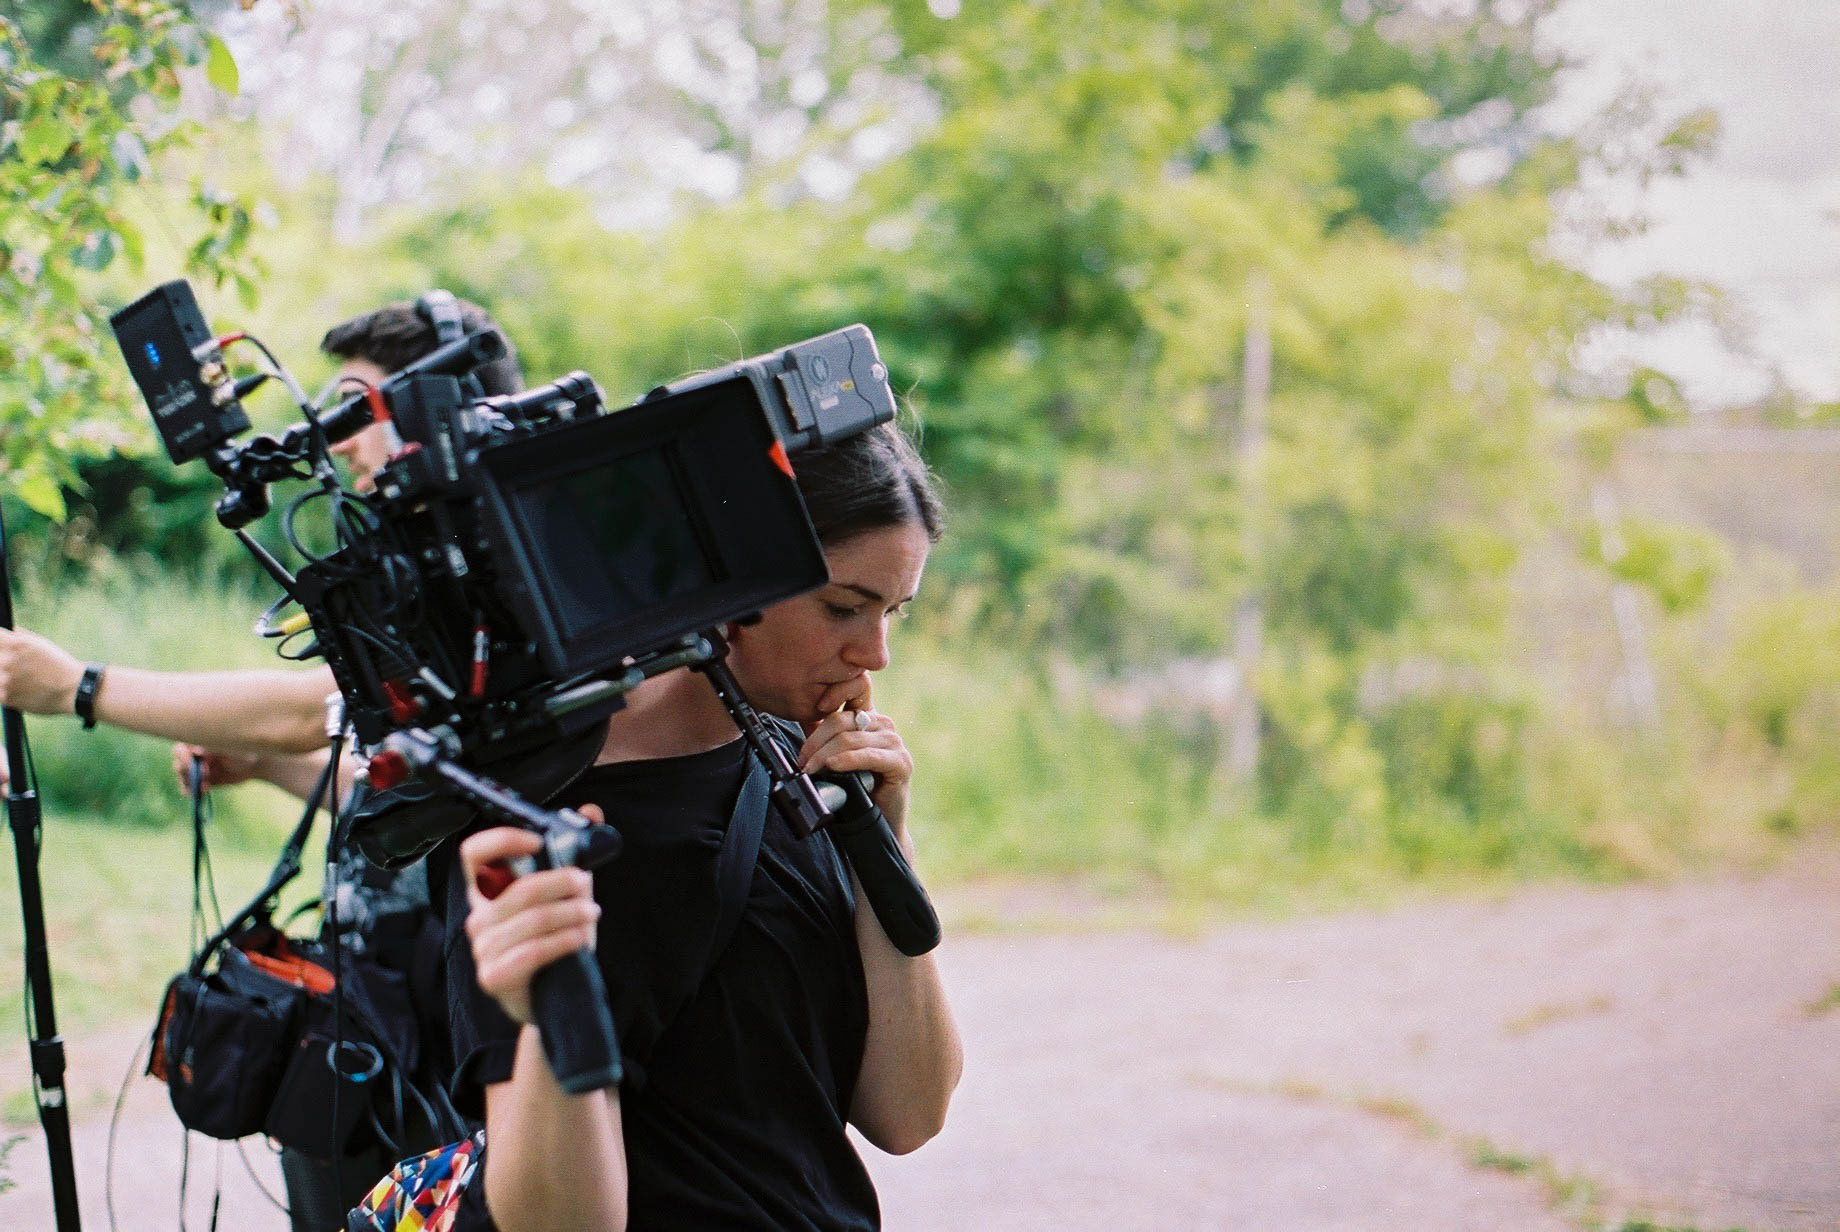 Cinematographer - Technical Skills, Qualifications, Courses